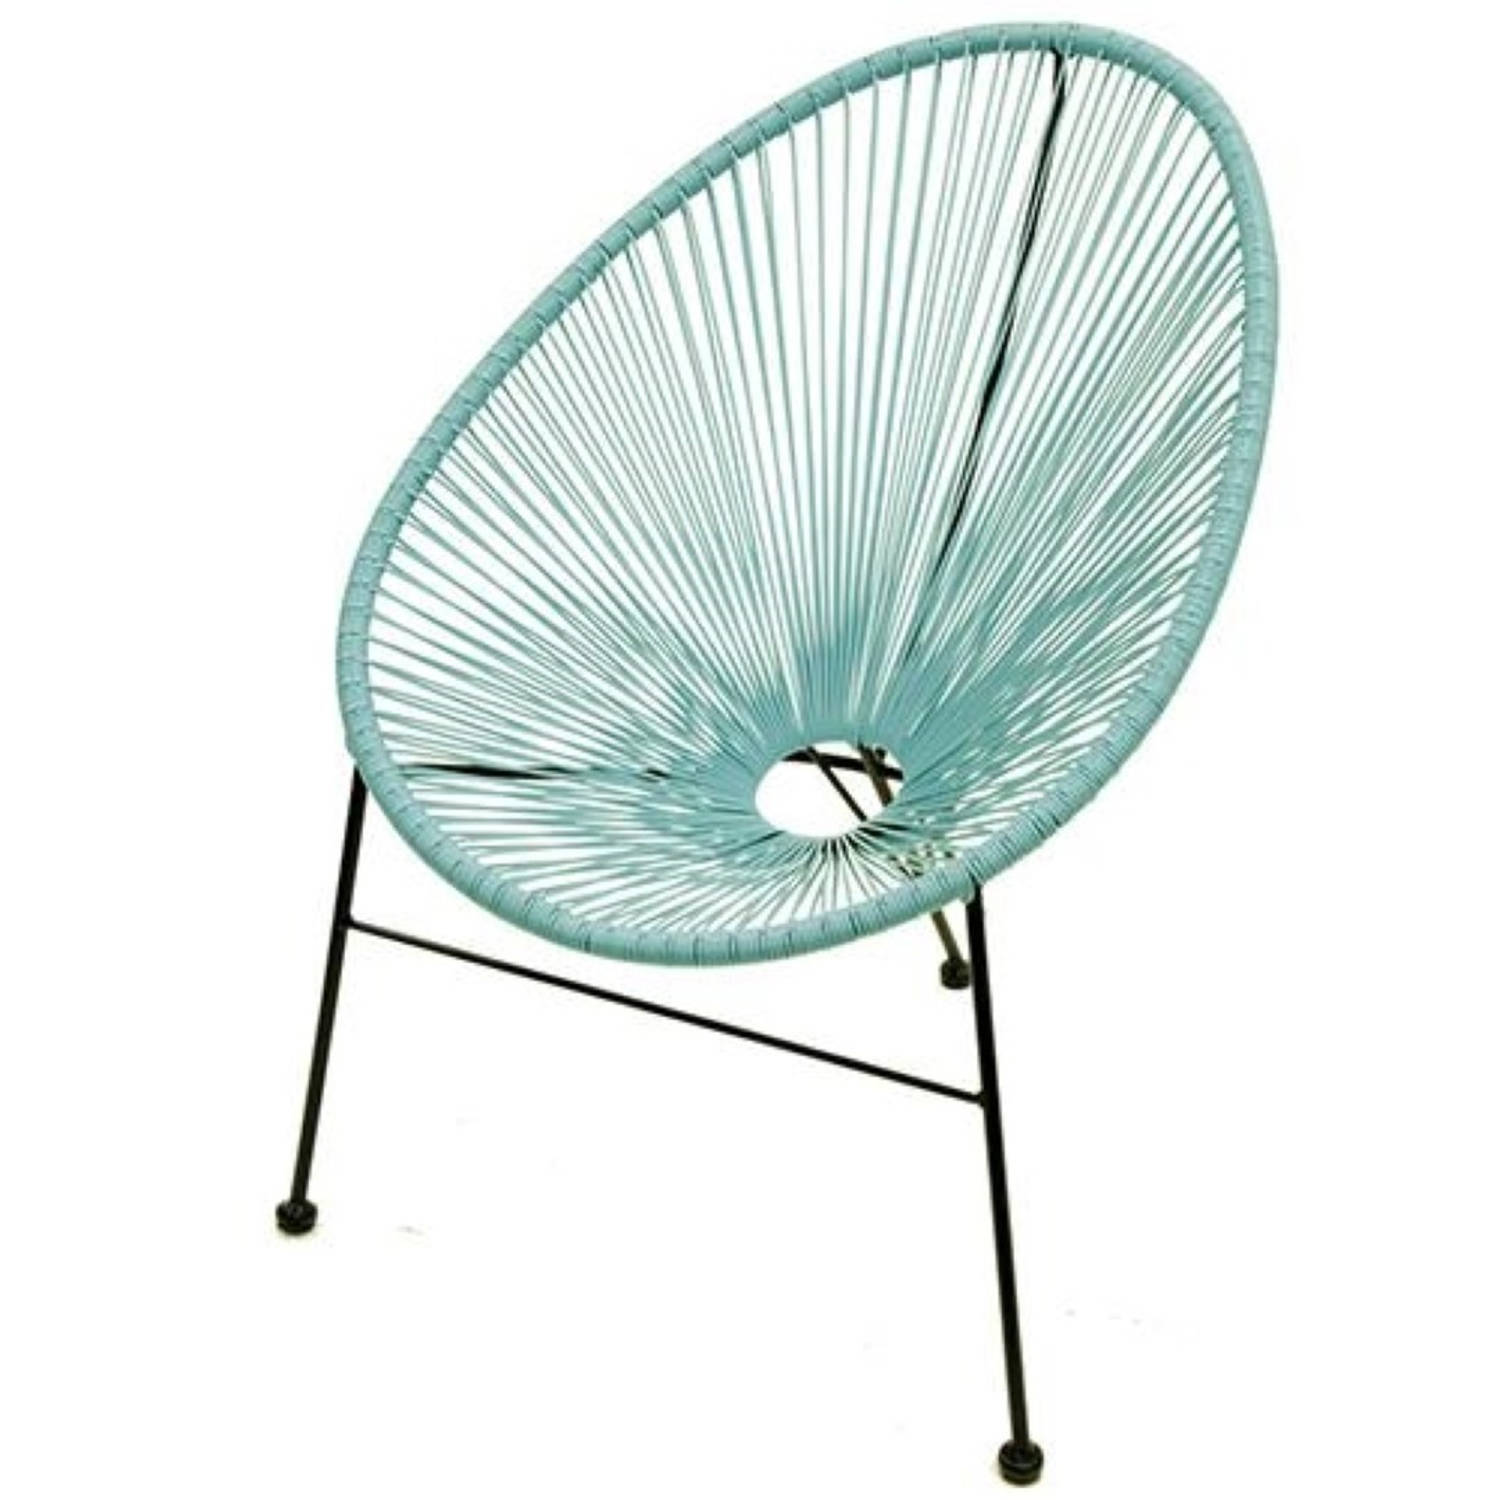 Salsa fauteuil turquoise